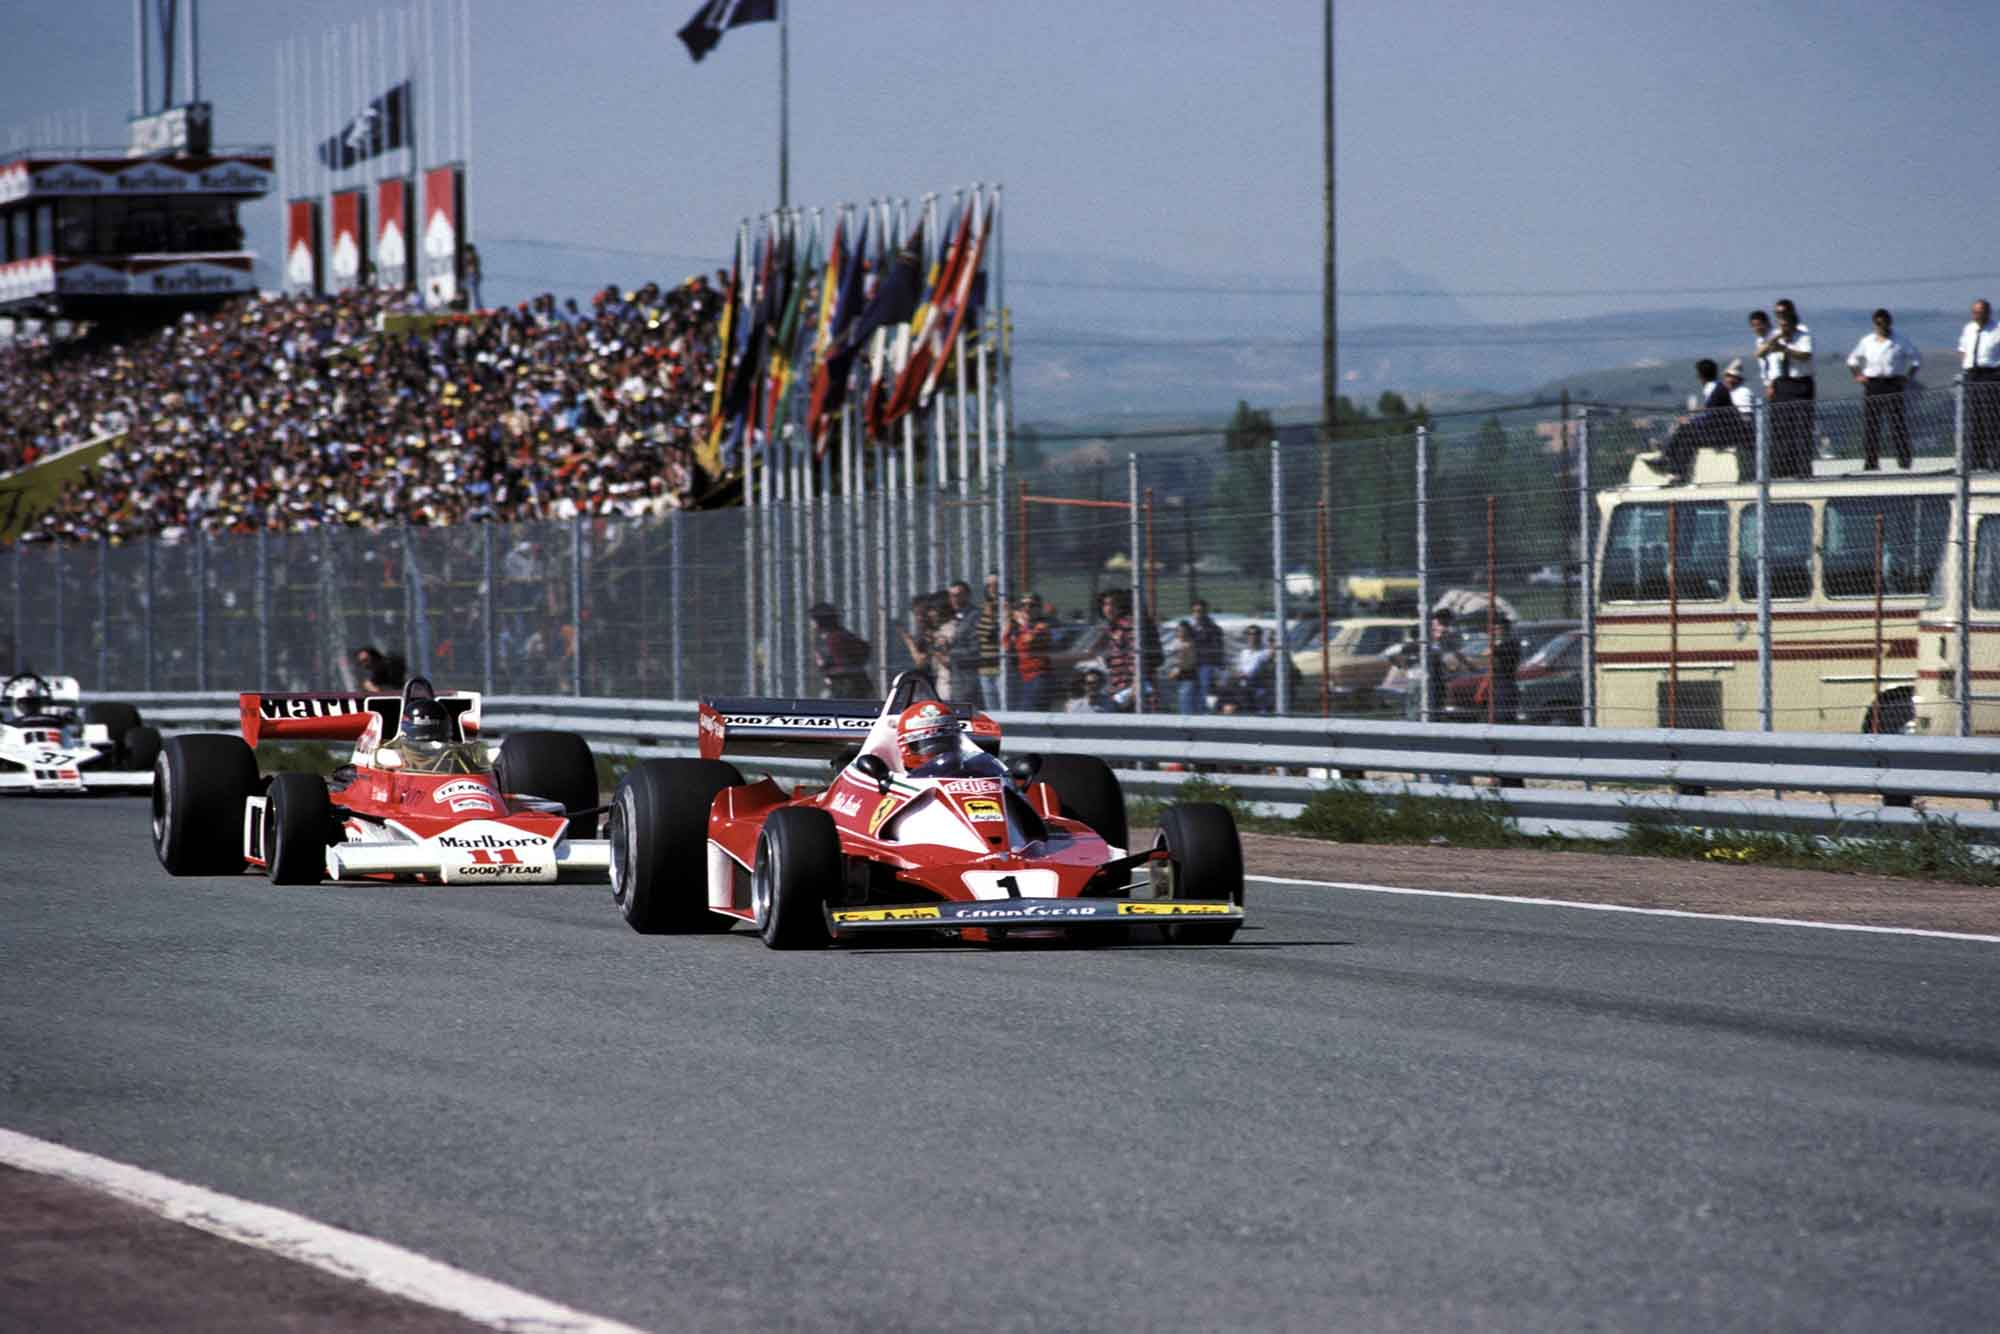 James Hunt (McLaren) chases Niki Lauda (Ferrari) at the 1976 Spanish Grand Prix